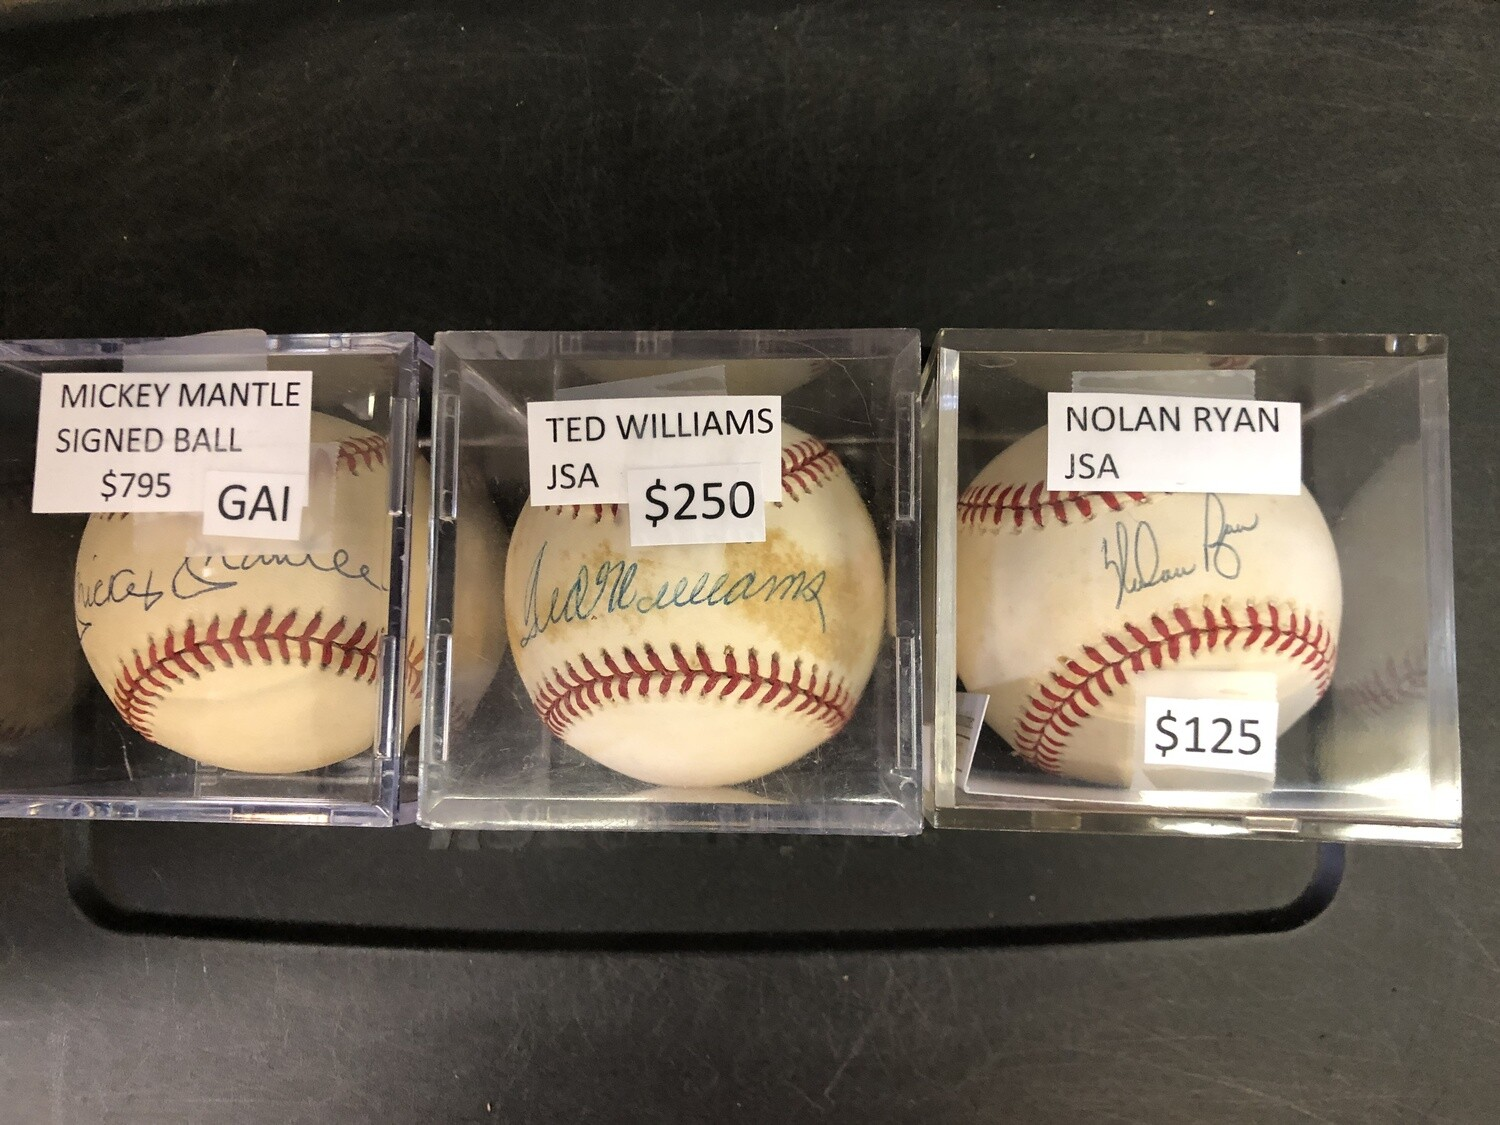 Ted Williams signed baseball JSA authenticated